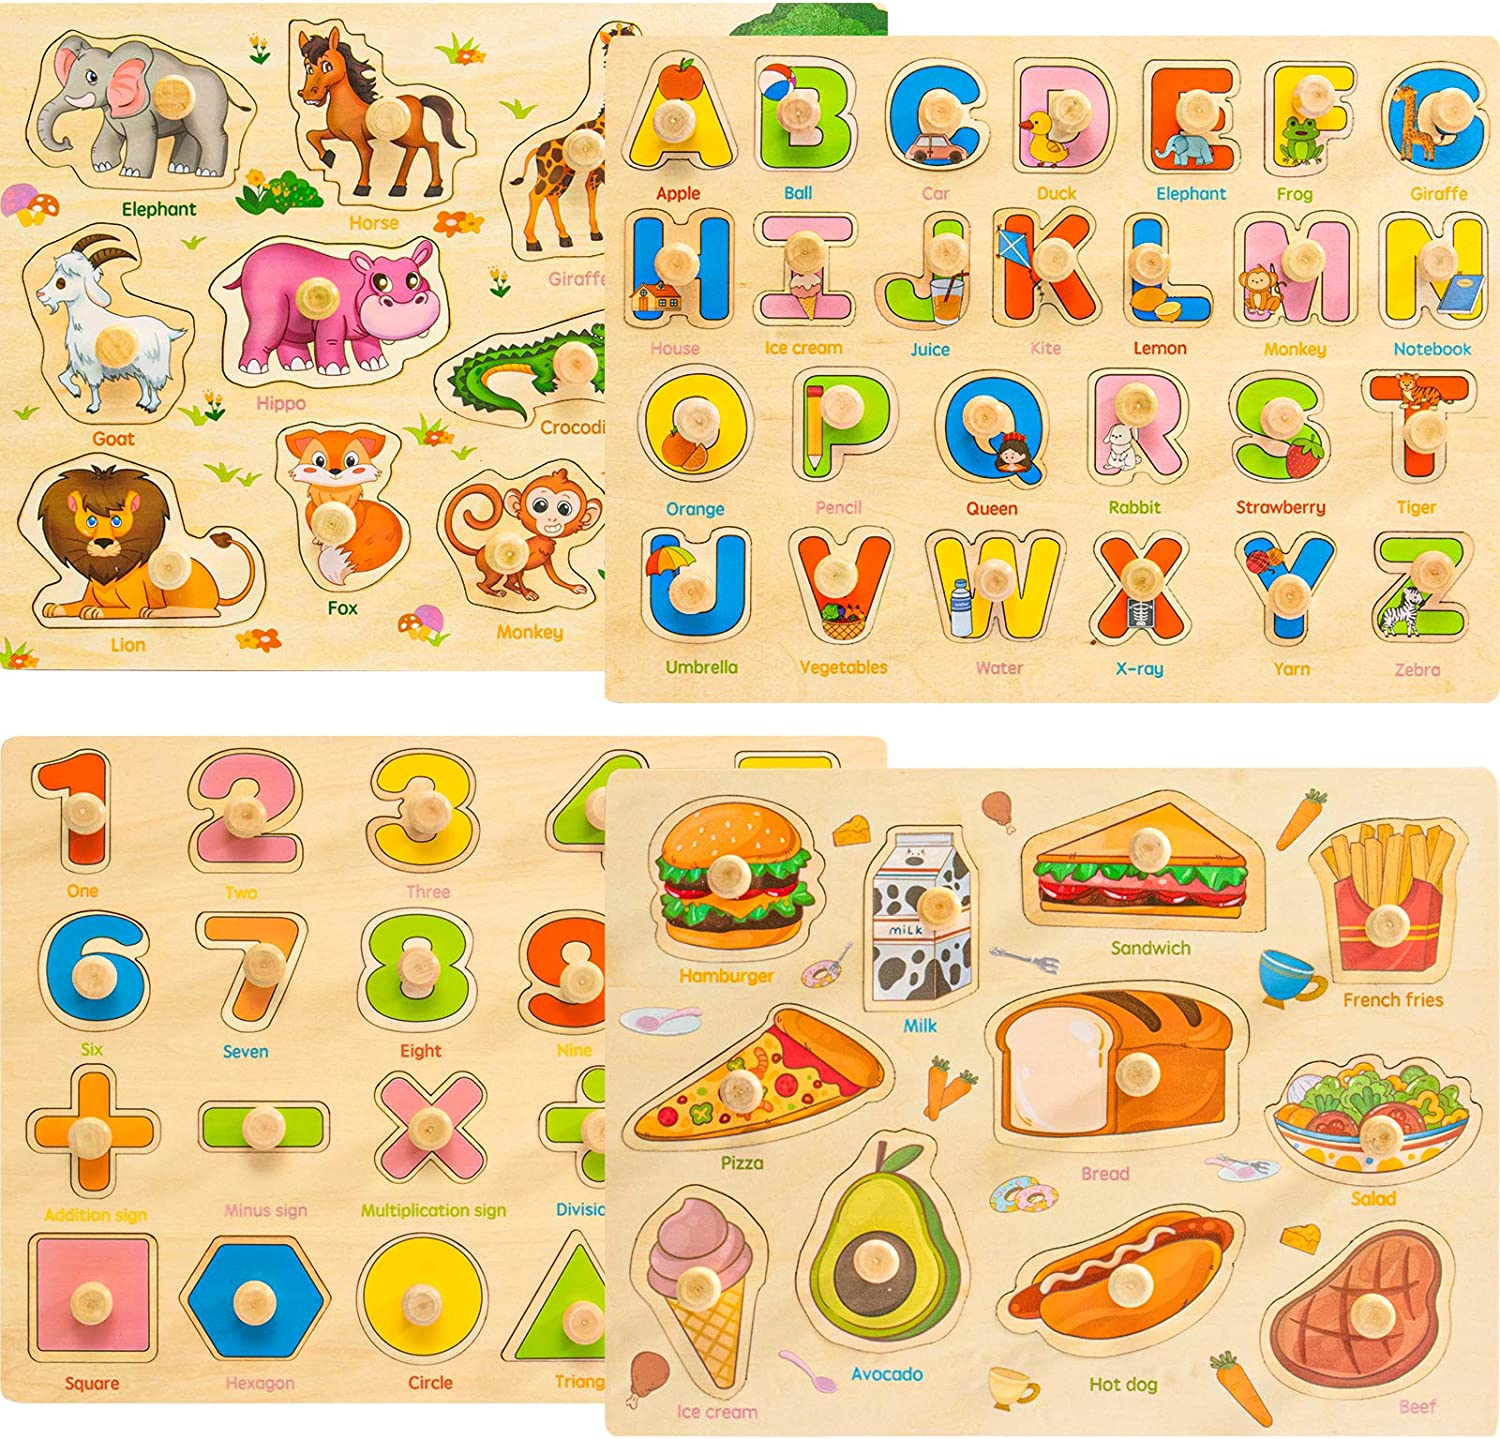 Familamb Toddler Puzzles, Wooden Peg Puzzles for Kids 2 3 4 Years Old, Alphabet Number Animal Food Puzzles with Knob, Preschool Learning Puzzles Toys for Baby Infants Boys and Girls (4 Pack)